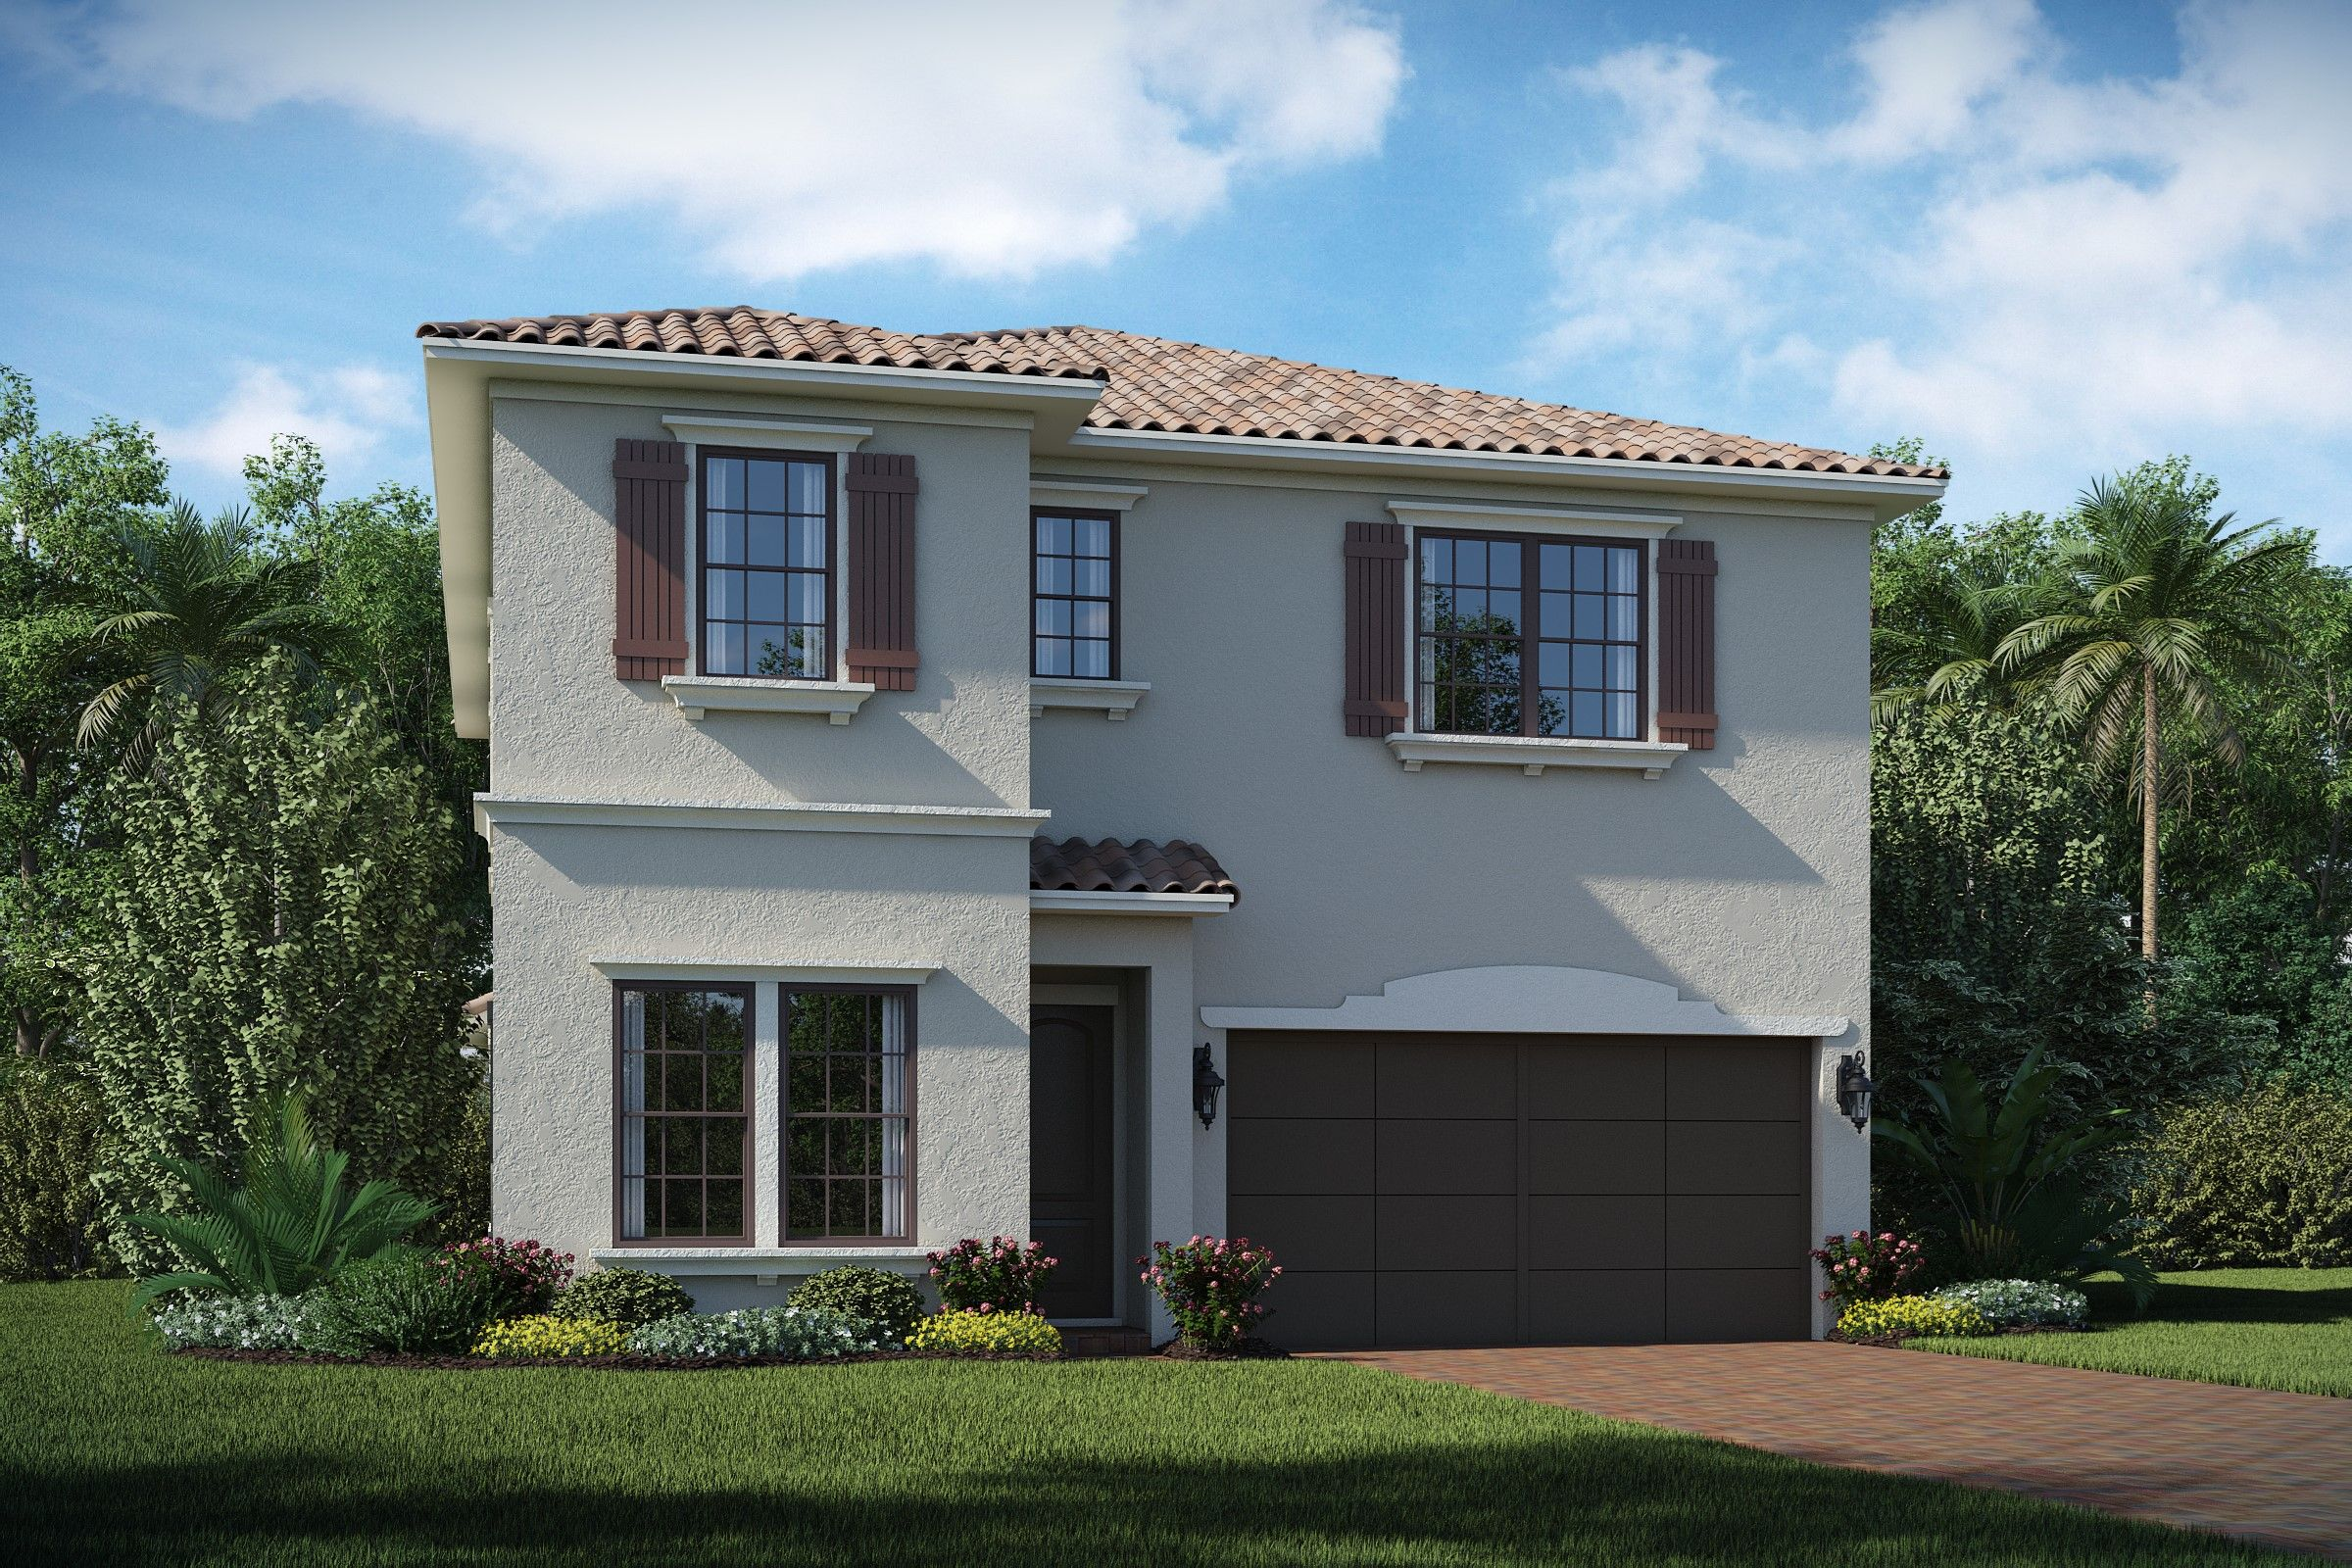 Single Family for Active at Coral Lago - Wheatley University Drive And Nw 39th Street Coral Springs, Florida 33075 United States